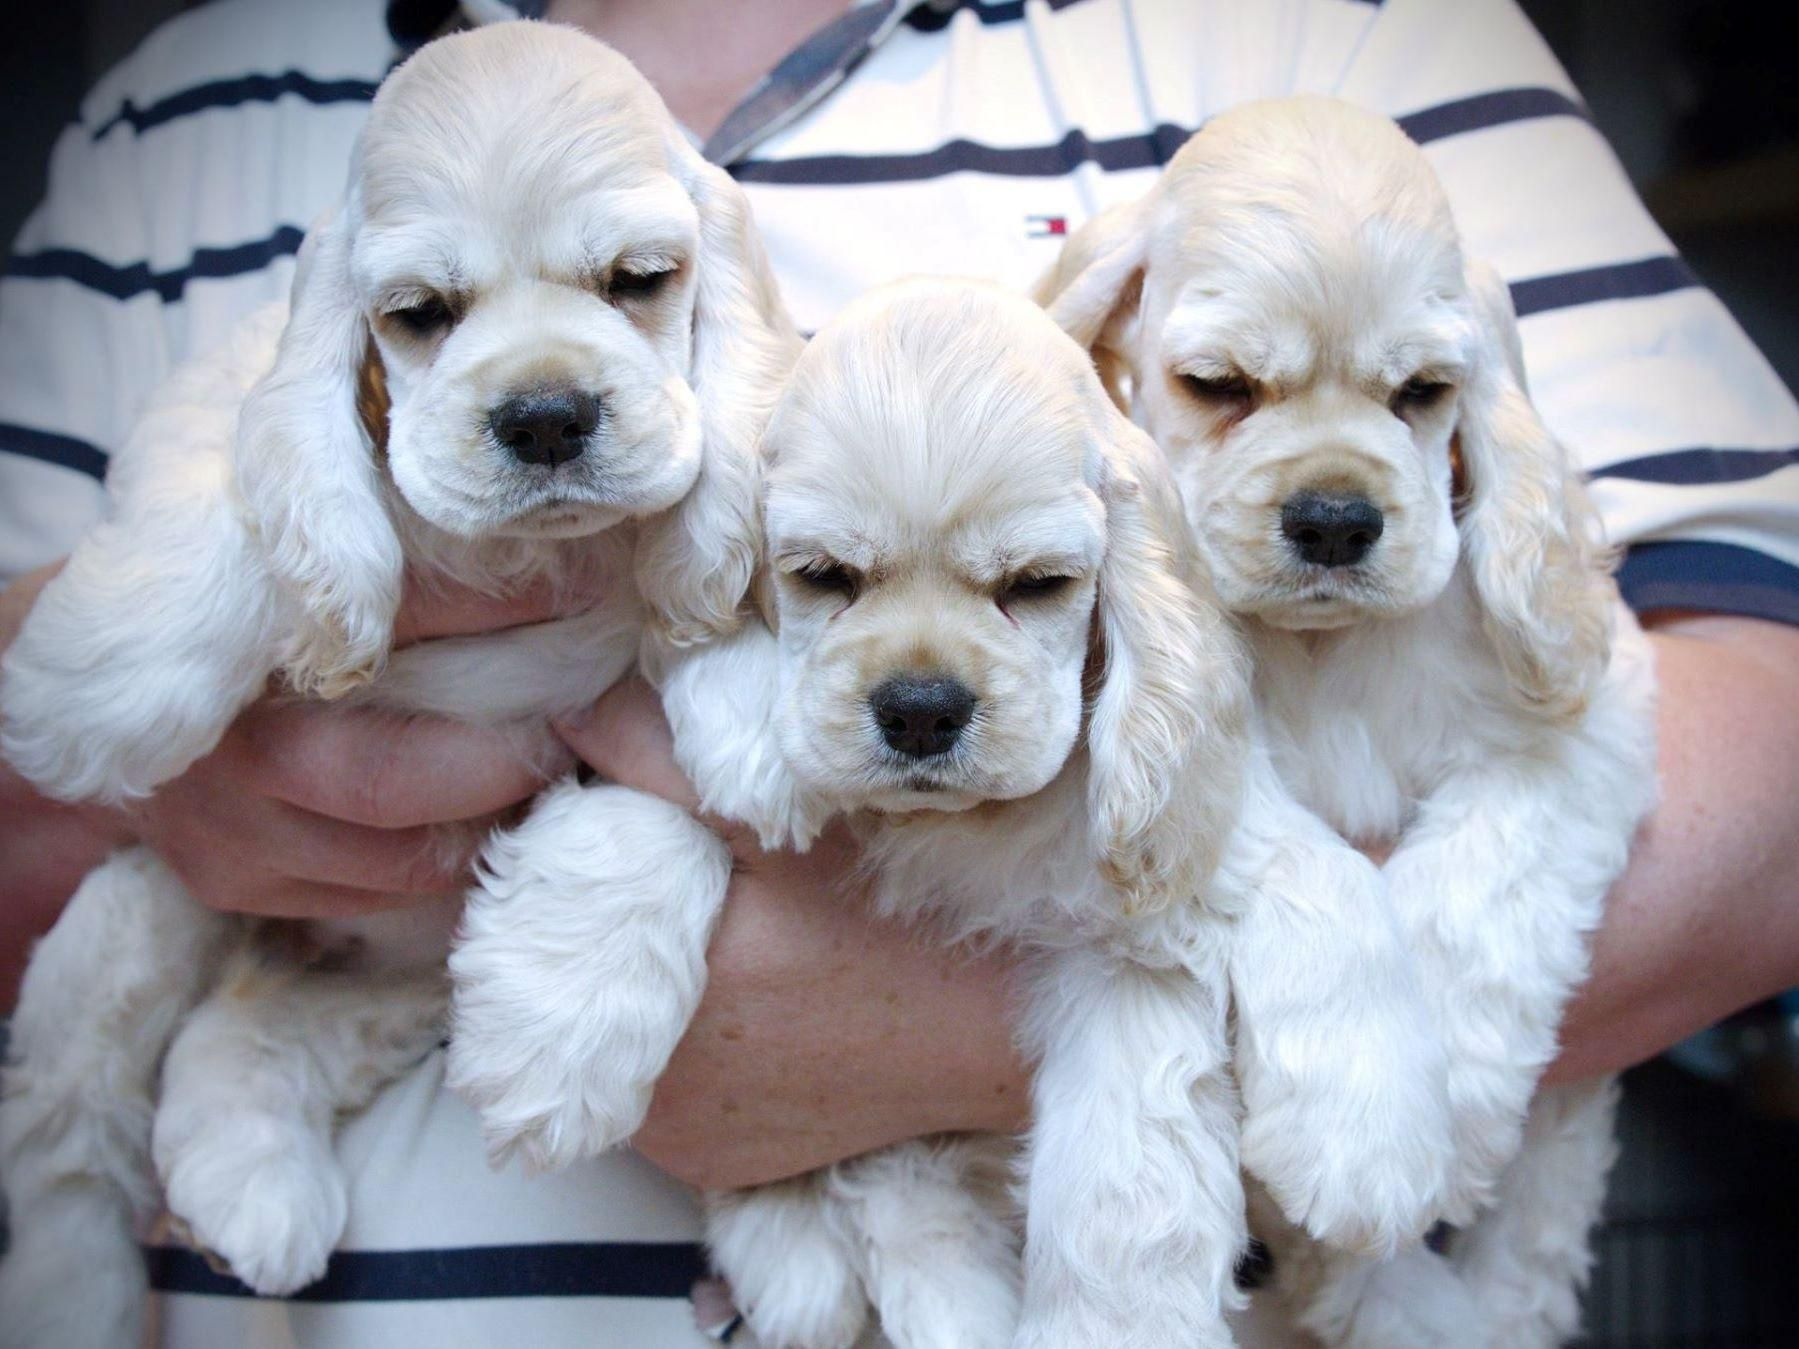 Ania S Cockers Has Cocker Spaniel Puppies For Sale In Mount Laurel